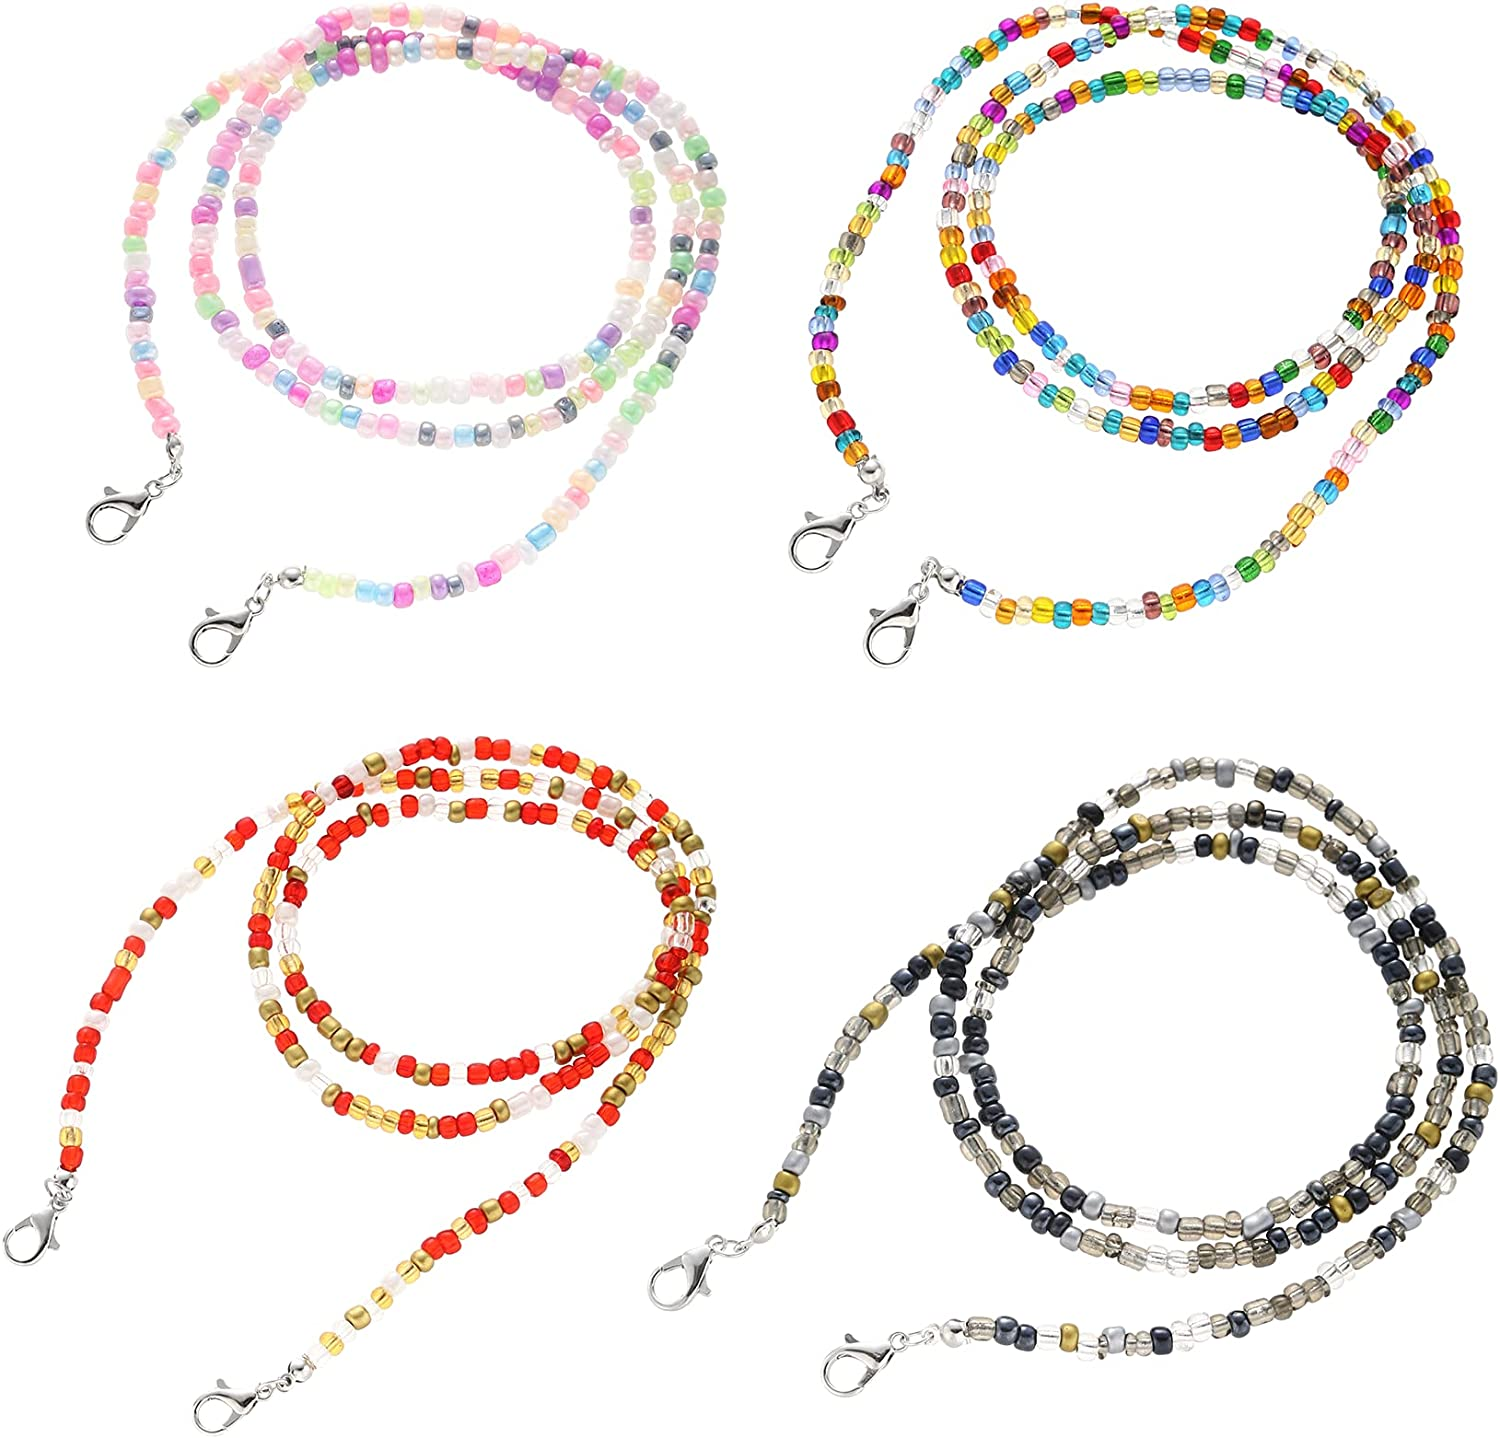 Hsarsup Lanyards for Outdoor with Clips Bead Eyeglass Neck Chain Strap Beaded Holders Multi-Functional